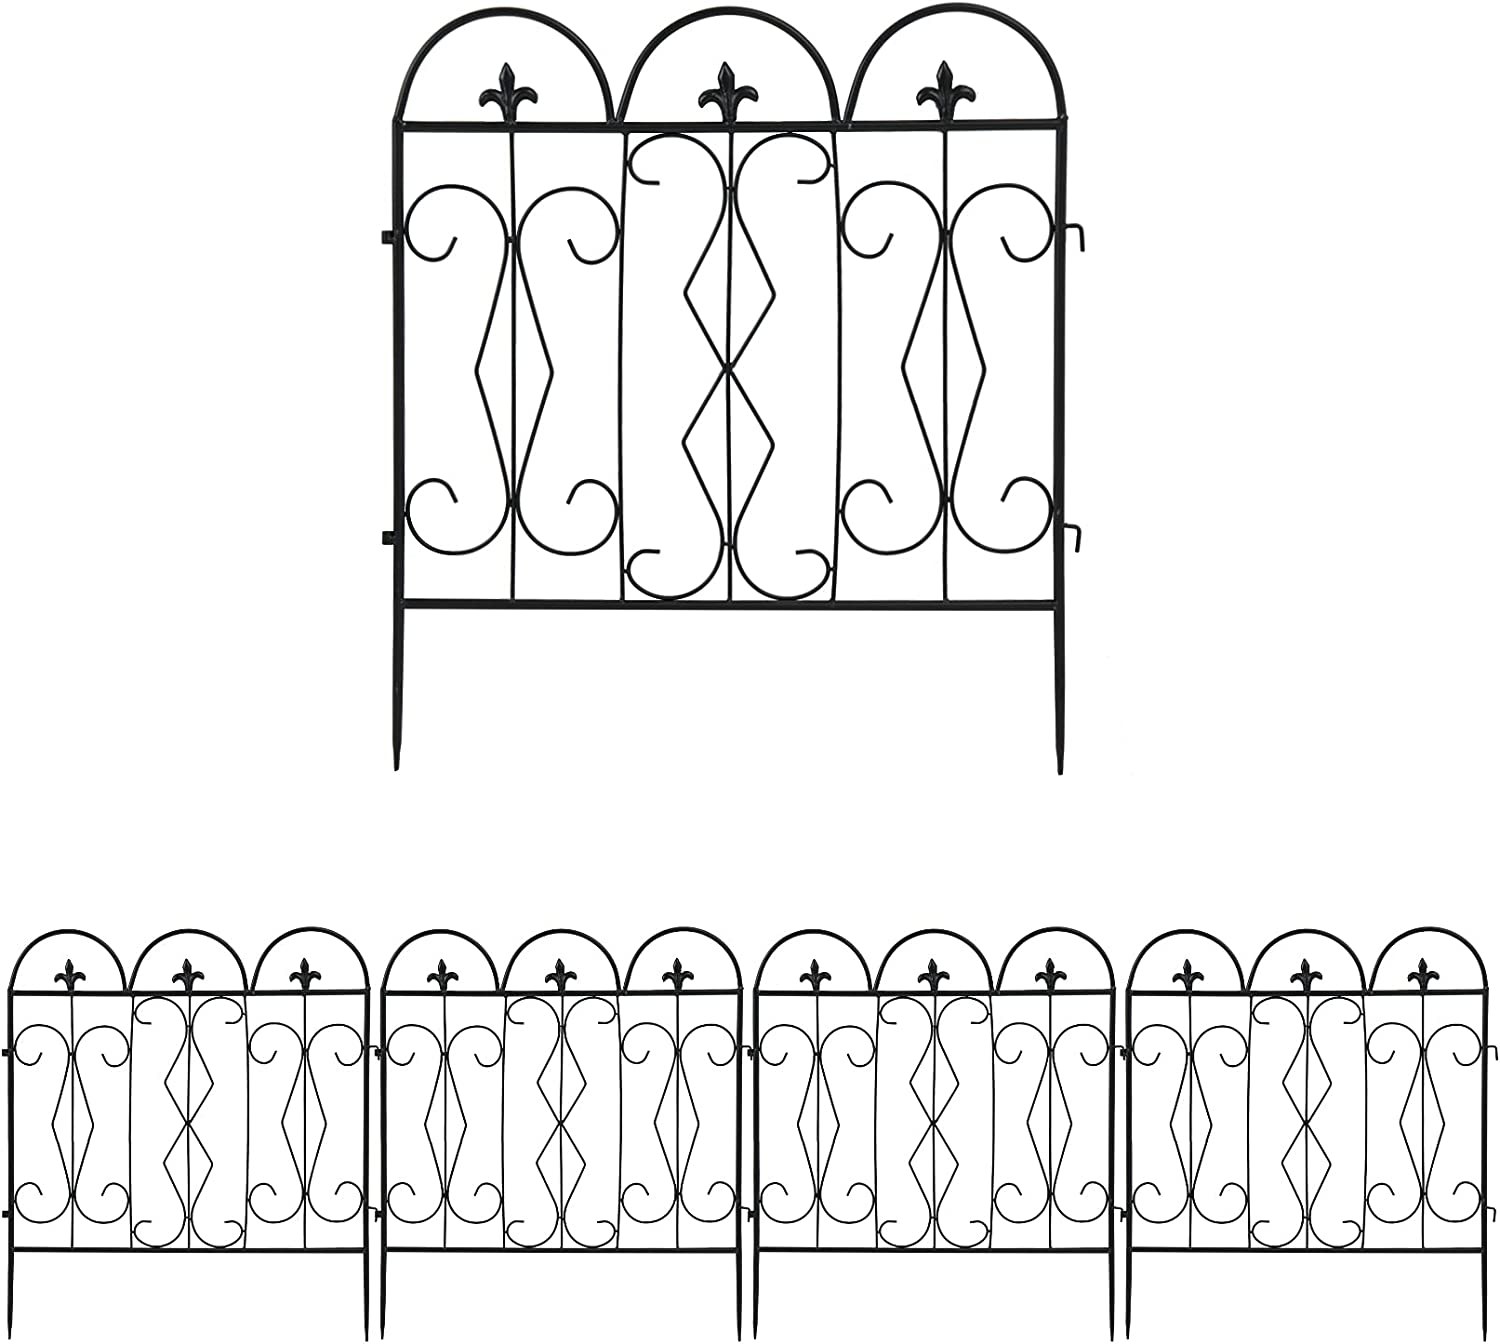 unho Metal Garden Fence, 5Panels Outdoor Decorative Wire Fencing 24x24 inches Lawn Landscape Path Border Garden Flowers Bed Edging Small Pet Fences Barrier Decor, Panel-7